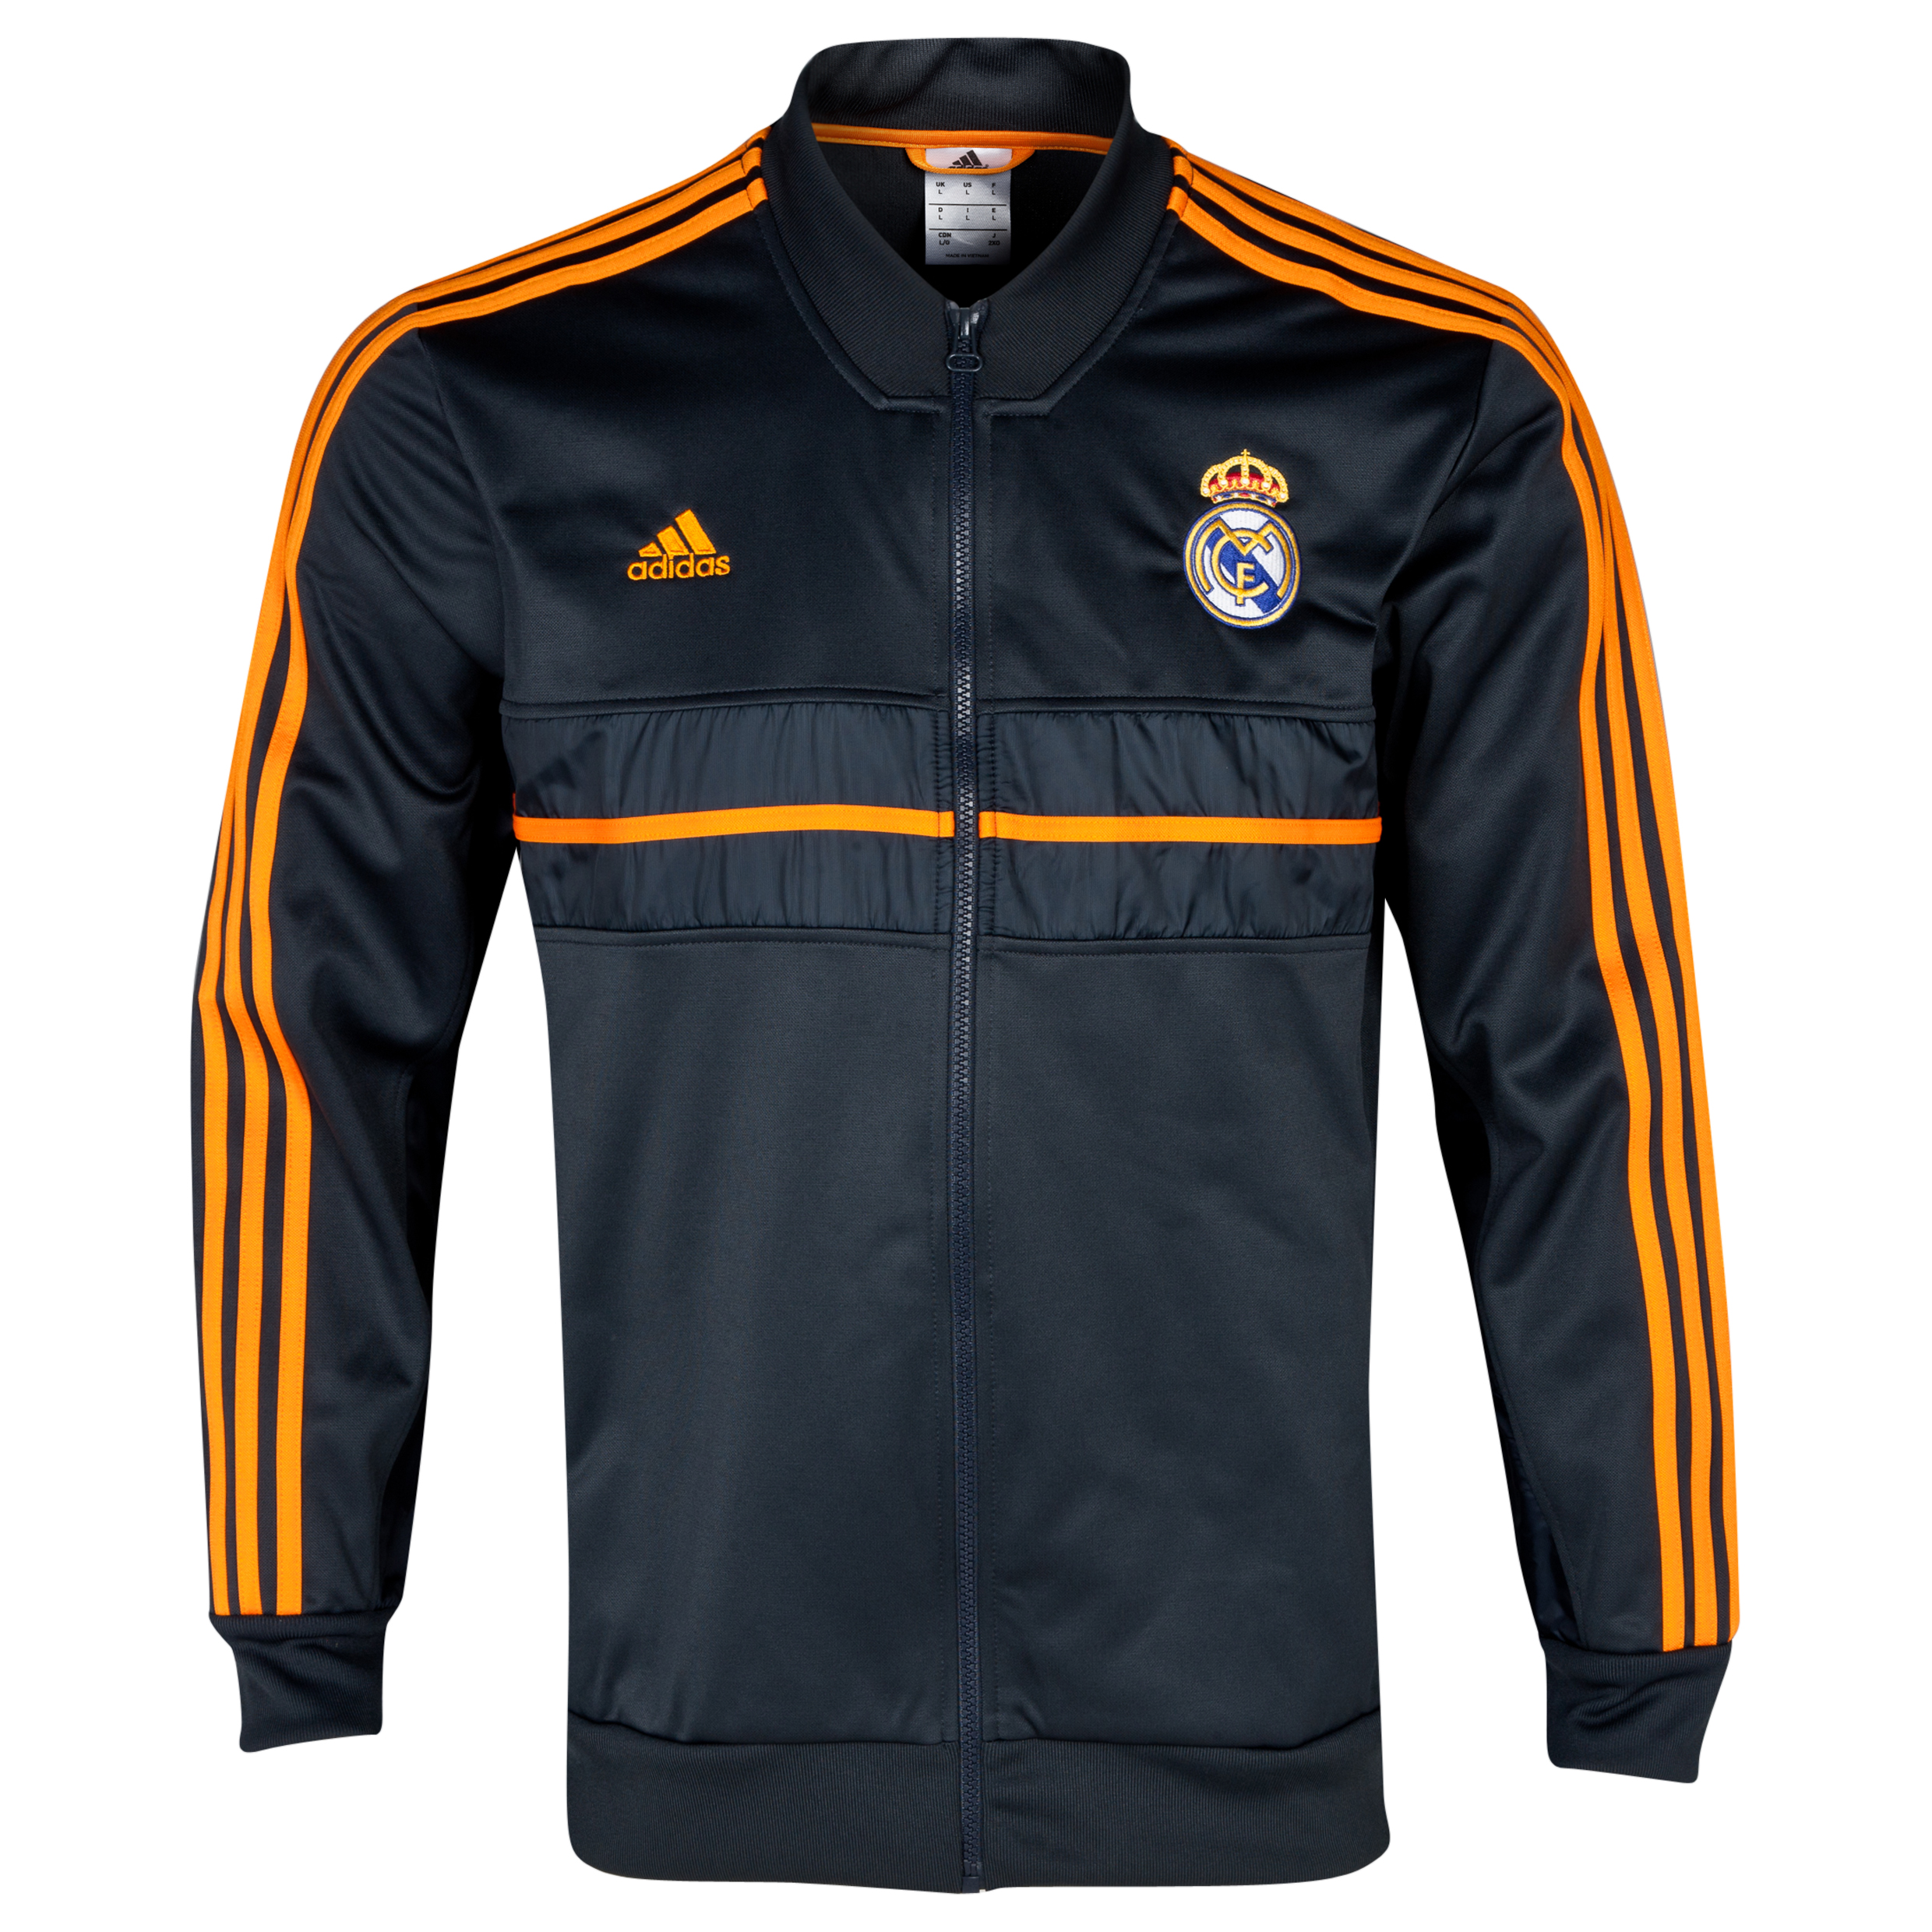 Real Madrid Anthem Jacket - Dark Shale/Zest